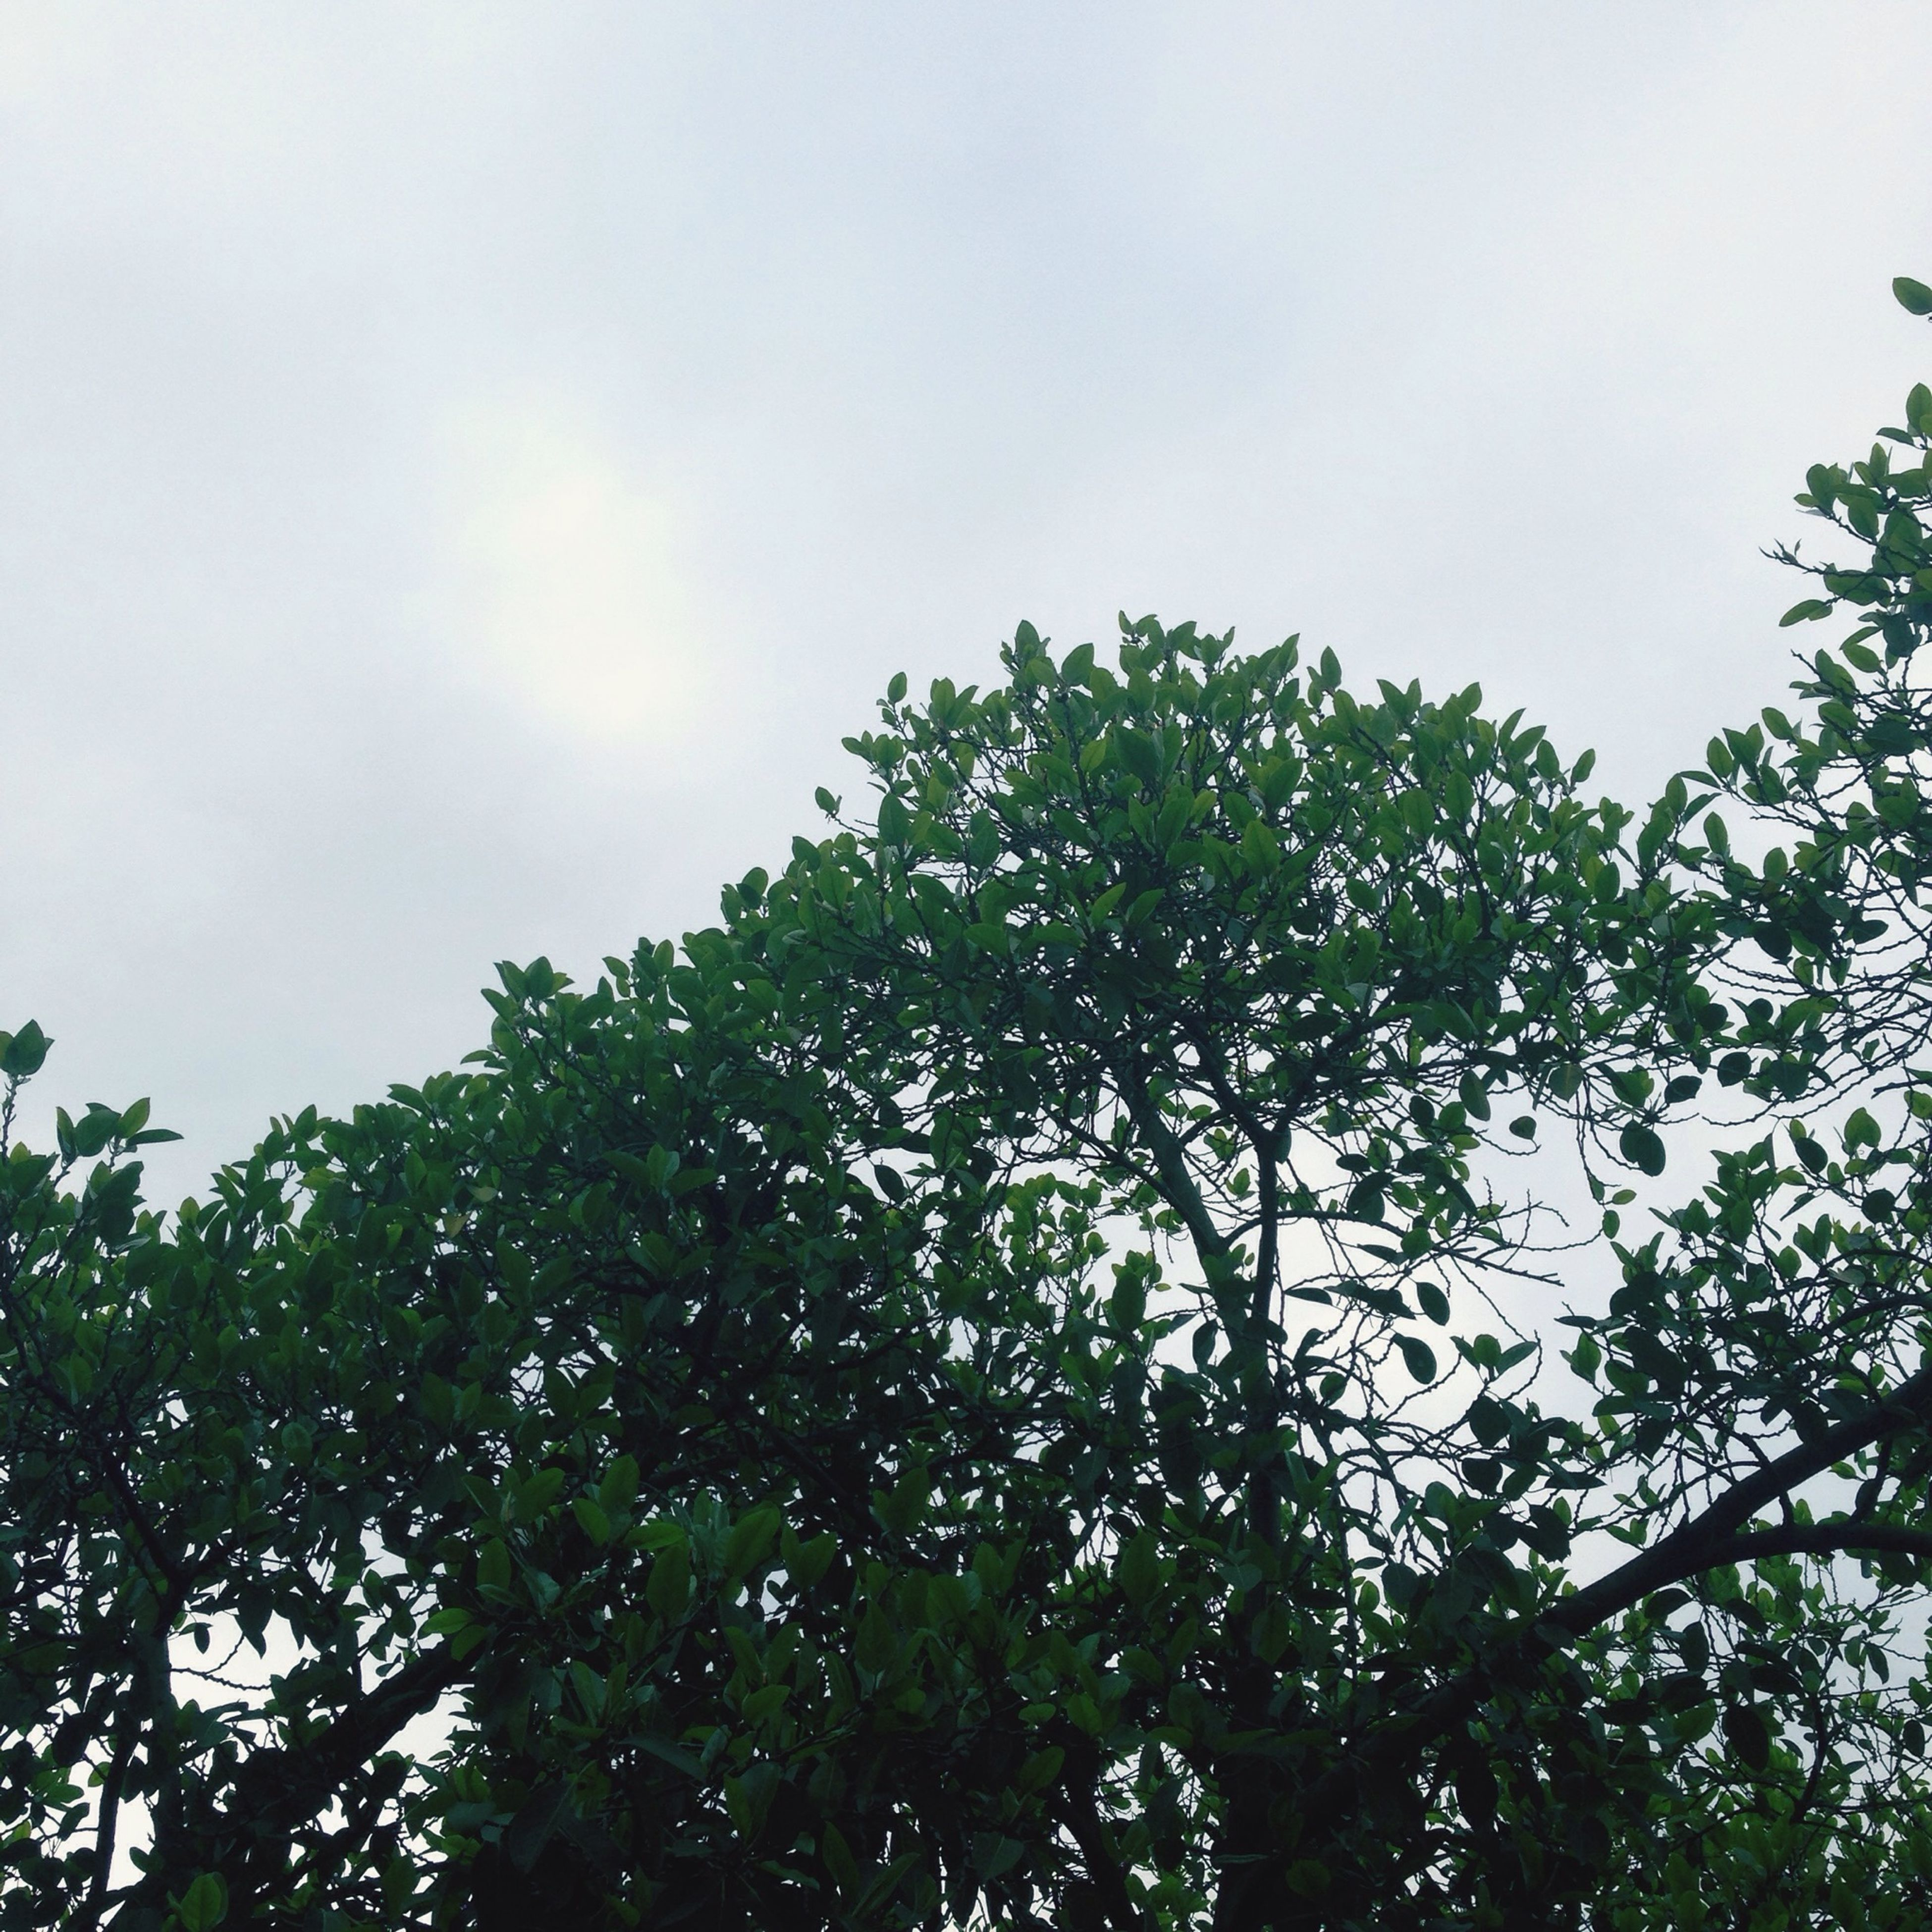 low angle view, tree, growth, sky, branch, nature, beauty in nature, tranquility, high section, green color, treetop, leaf, clear sky, day, outdoors, no people, scenics, lush foliage, tranquil scene, cloud - sky